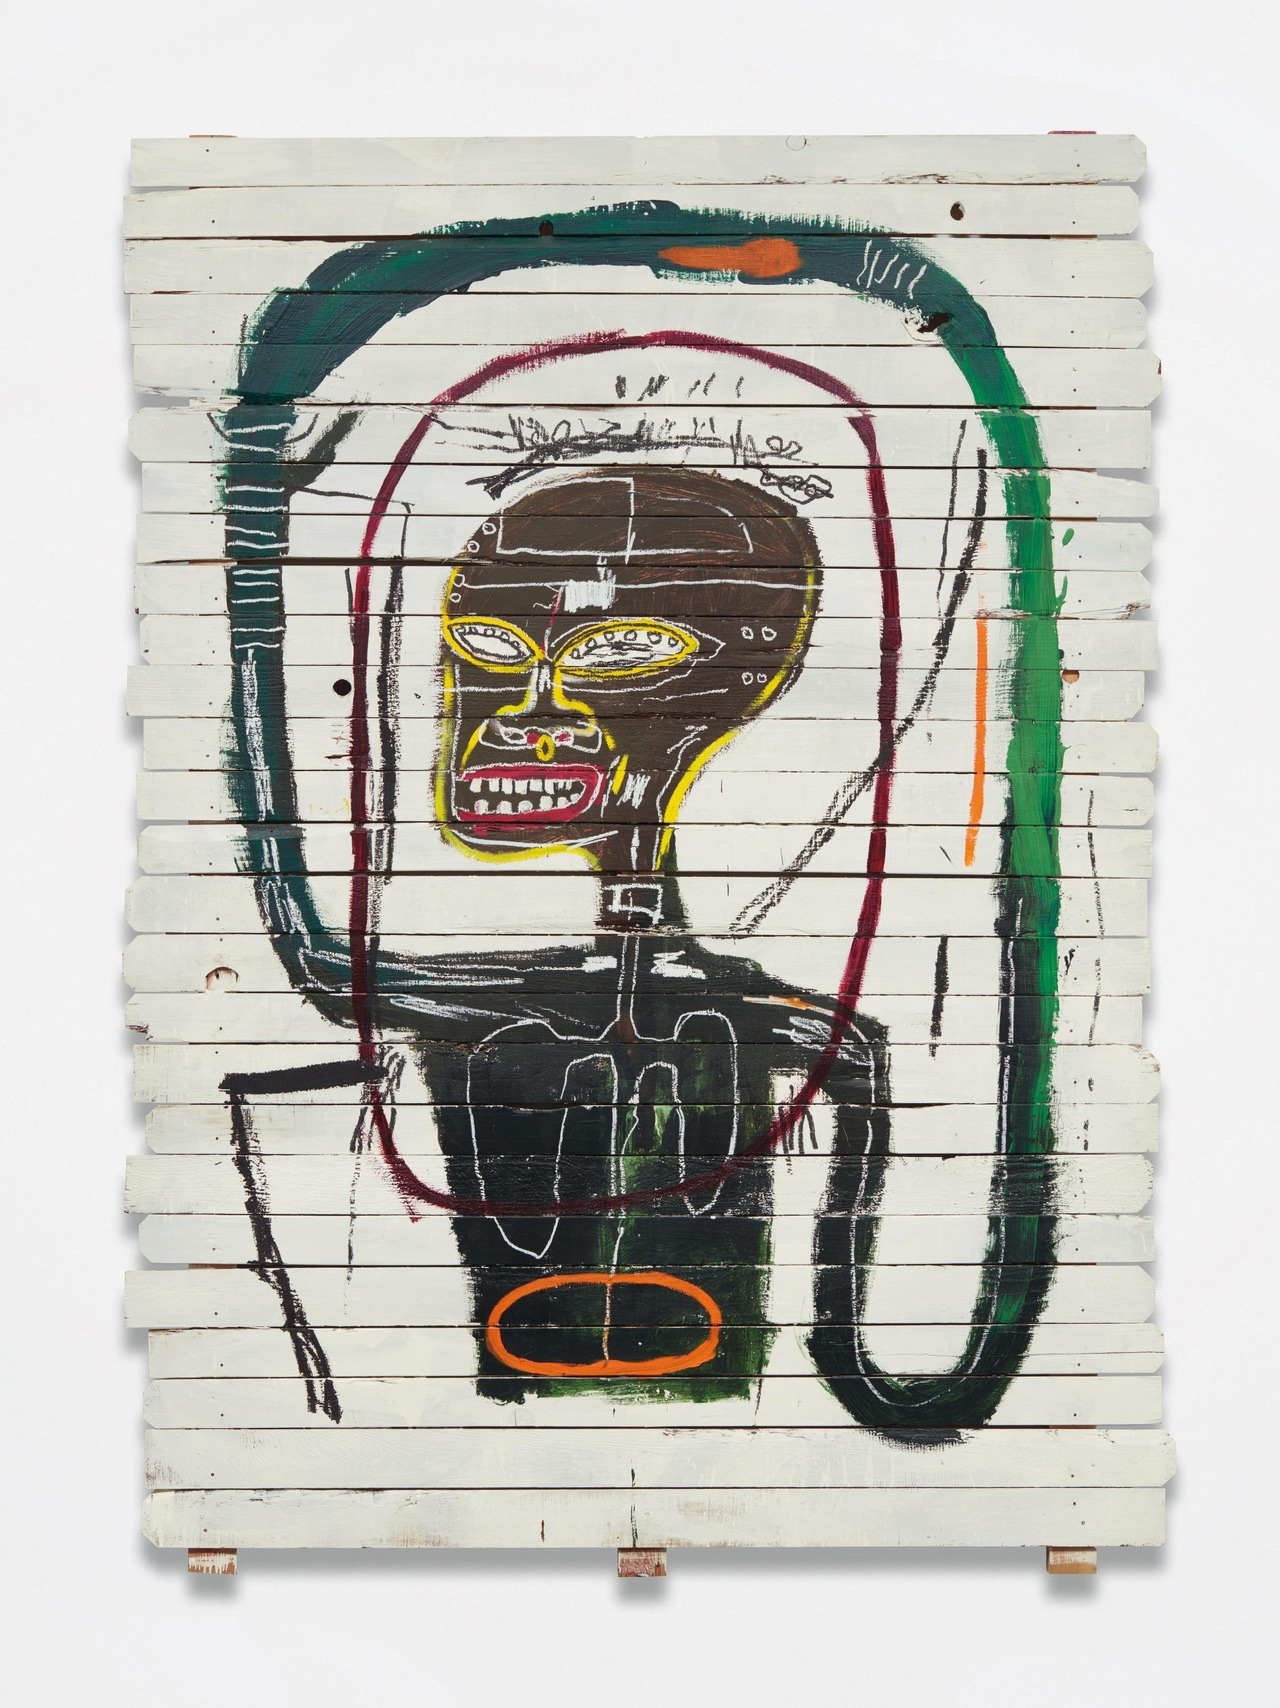 Jean Michel-Basquiat - Flexible, 1984